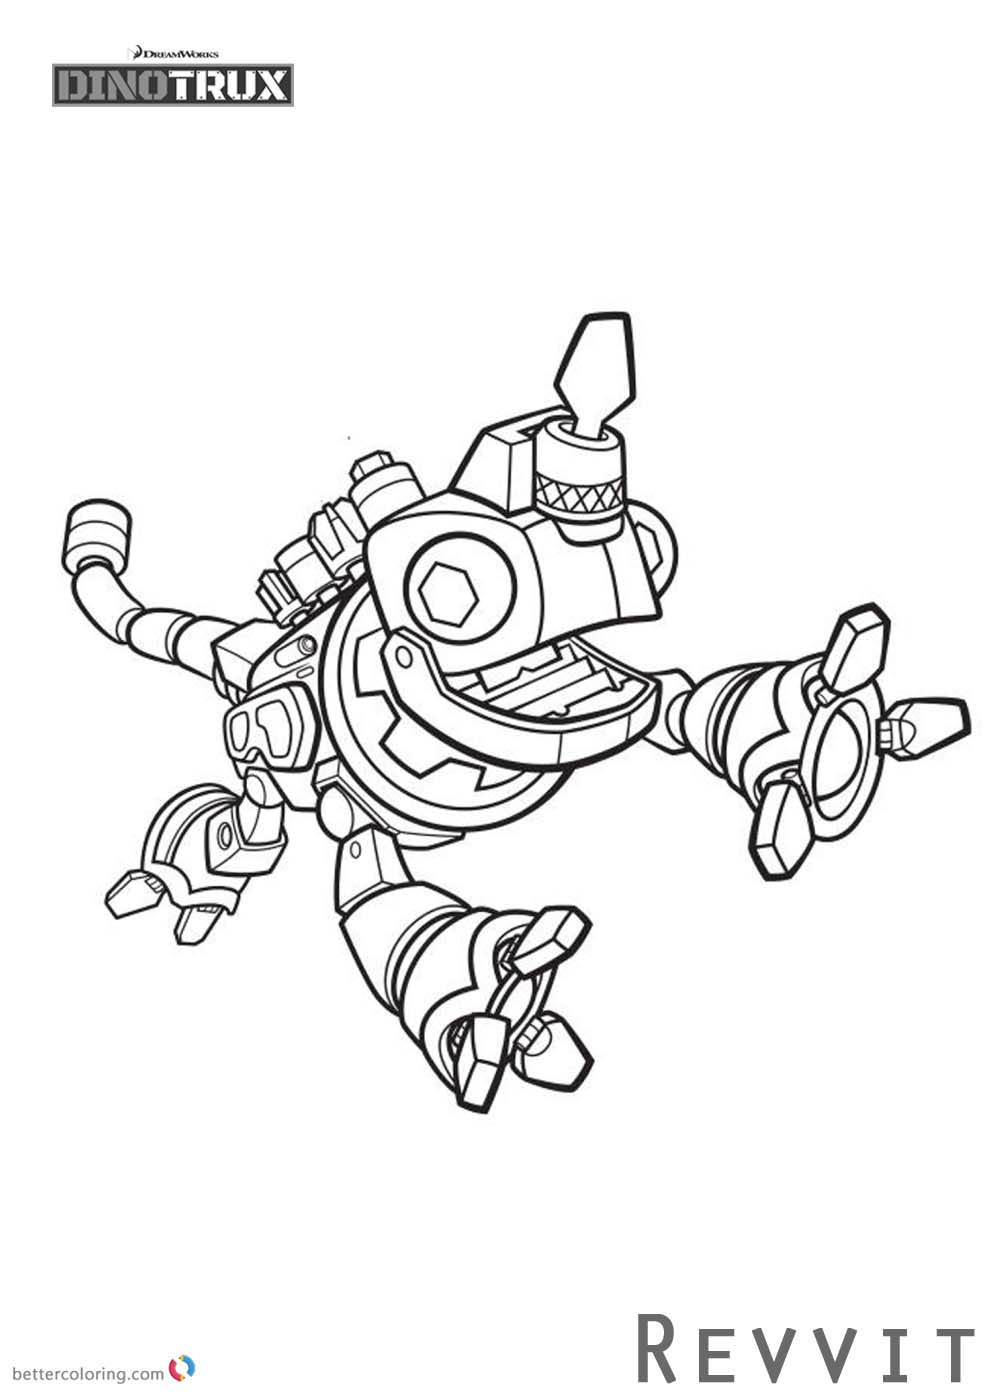 Dinotrux coloring pages Revvit is jumpping printable